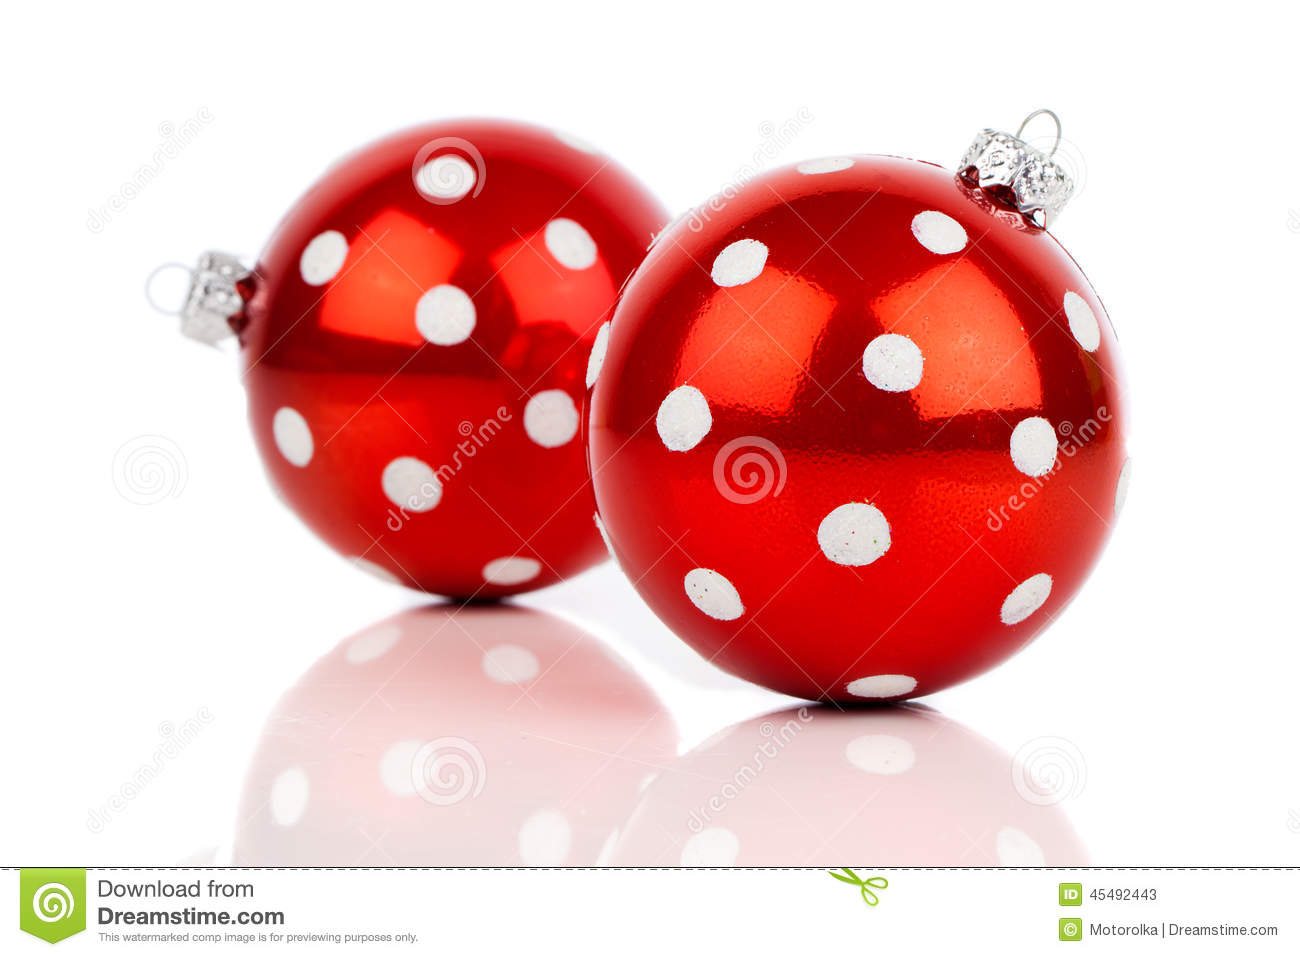 Polka dot christmas ornaments - Red Polka Dot Christmas Bauble